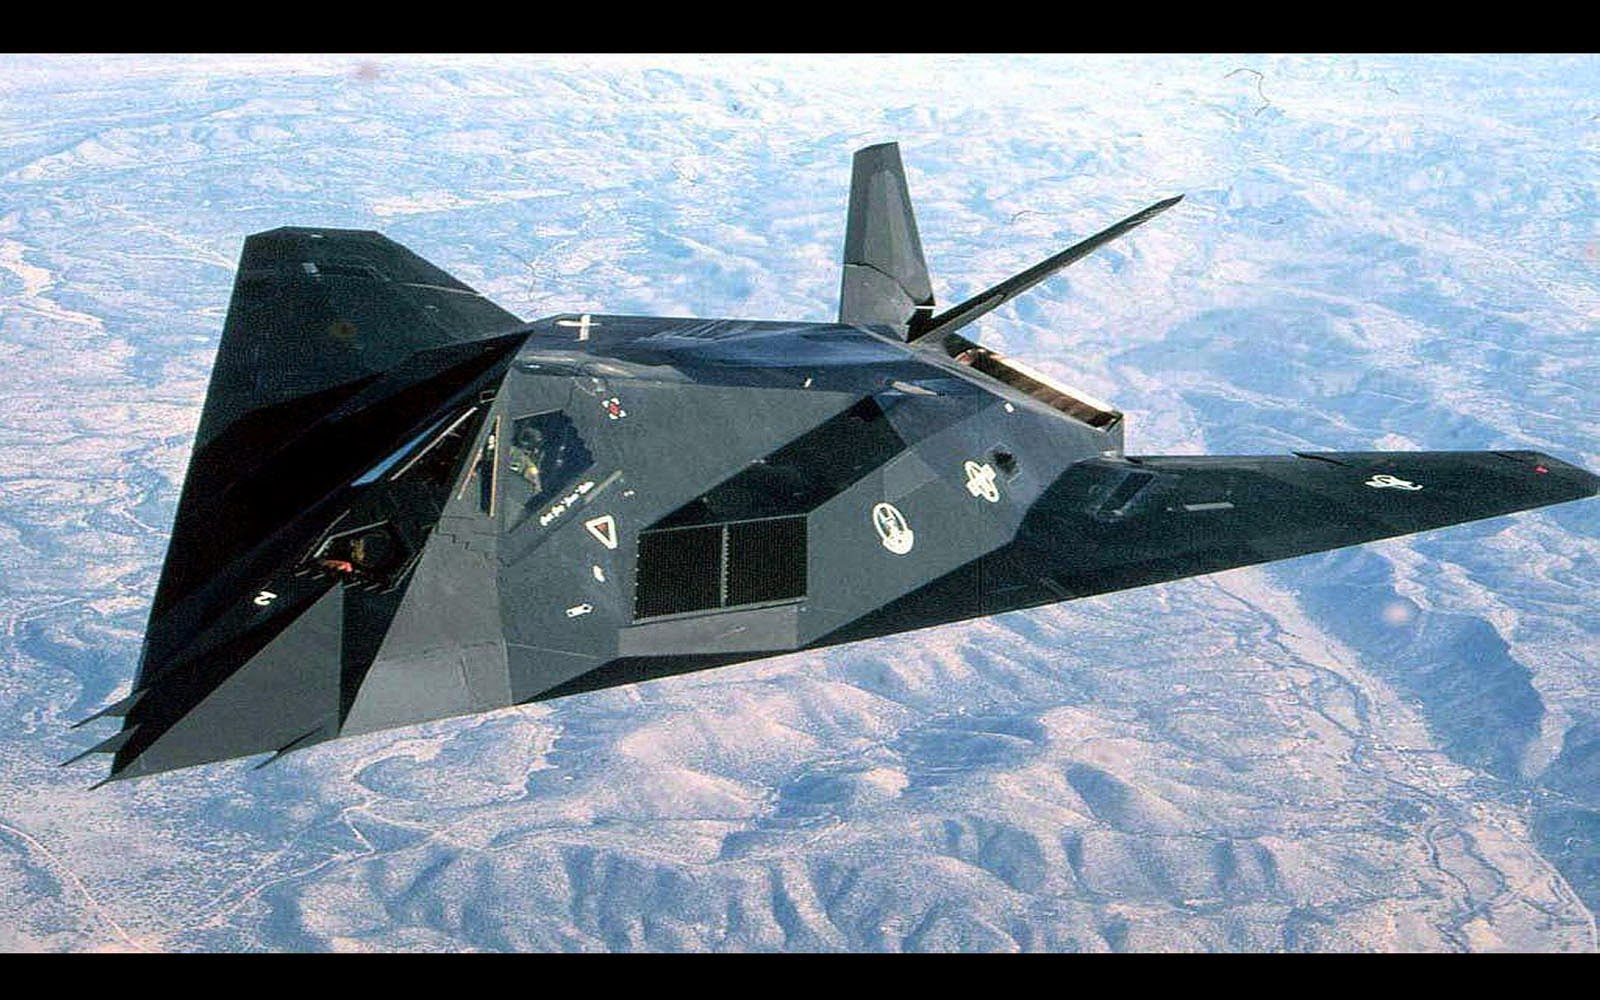 3d Hd Wallpapers For Windows 7 Free Download Wallpapers Lockheed F 117 Nighthawk Aircraft Wallpapers